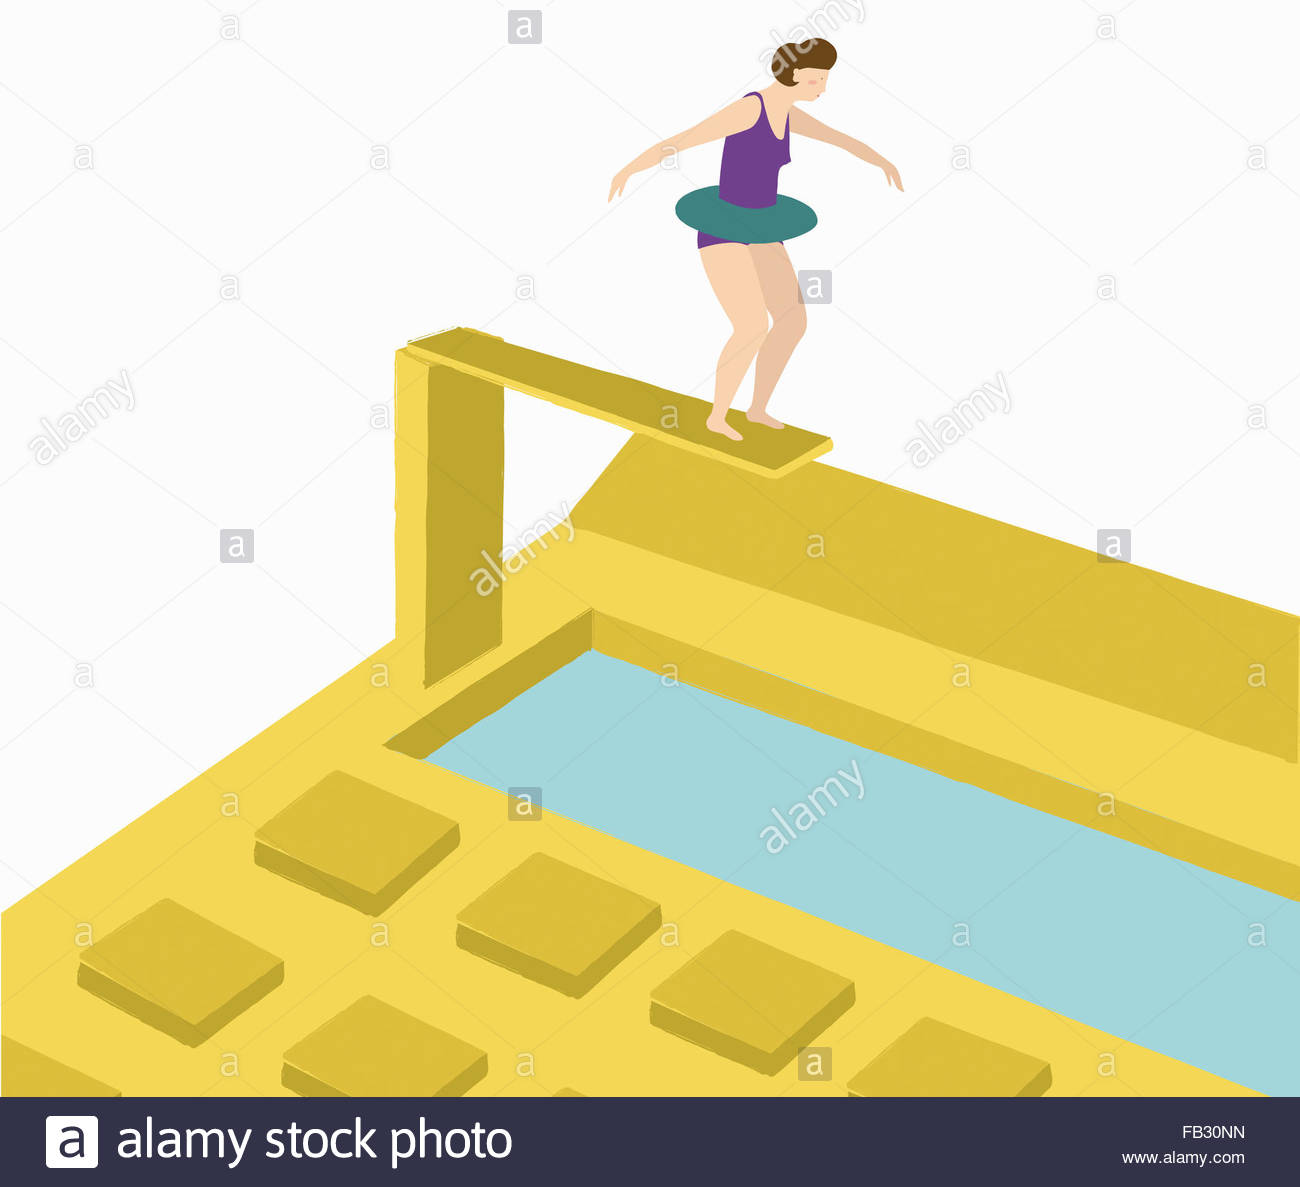 Woman wearing rubber ring on diving board above calculator - Stock Image